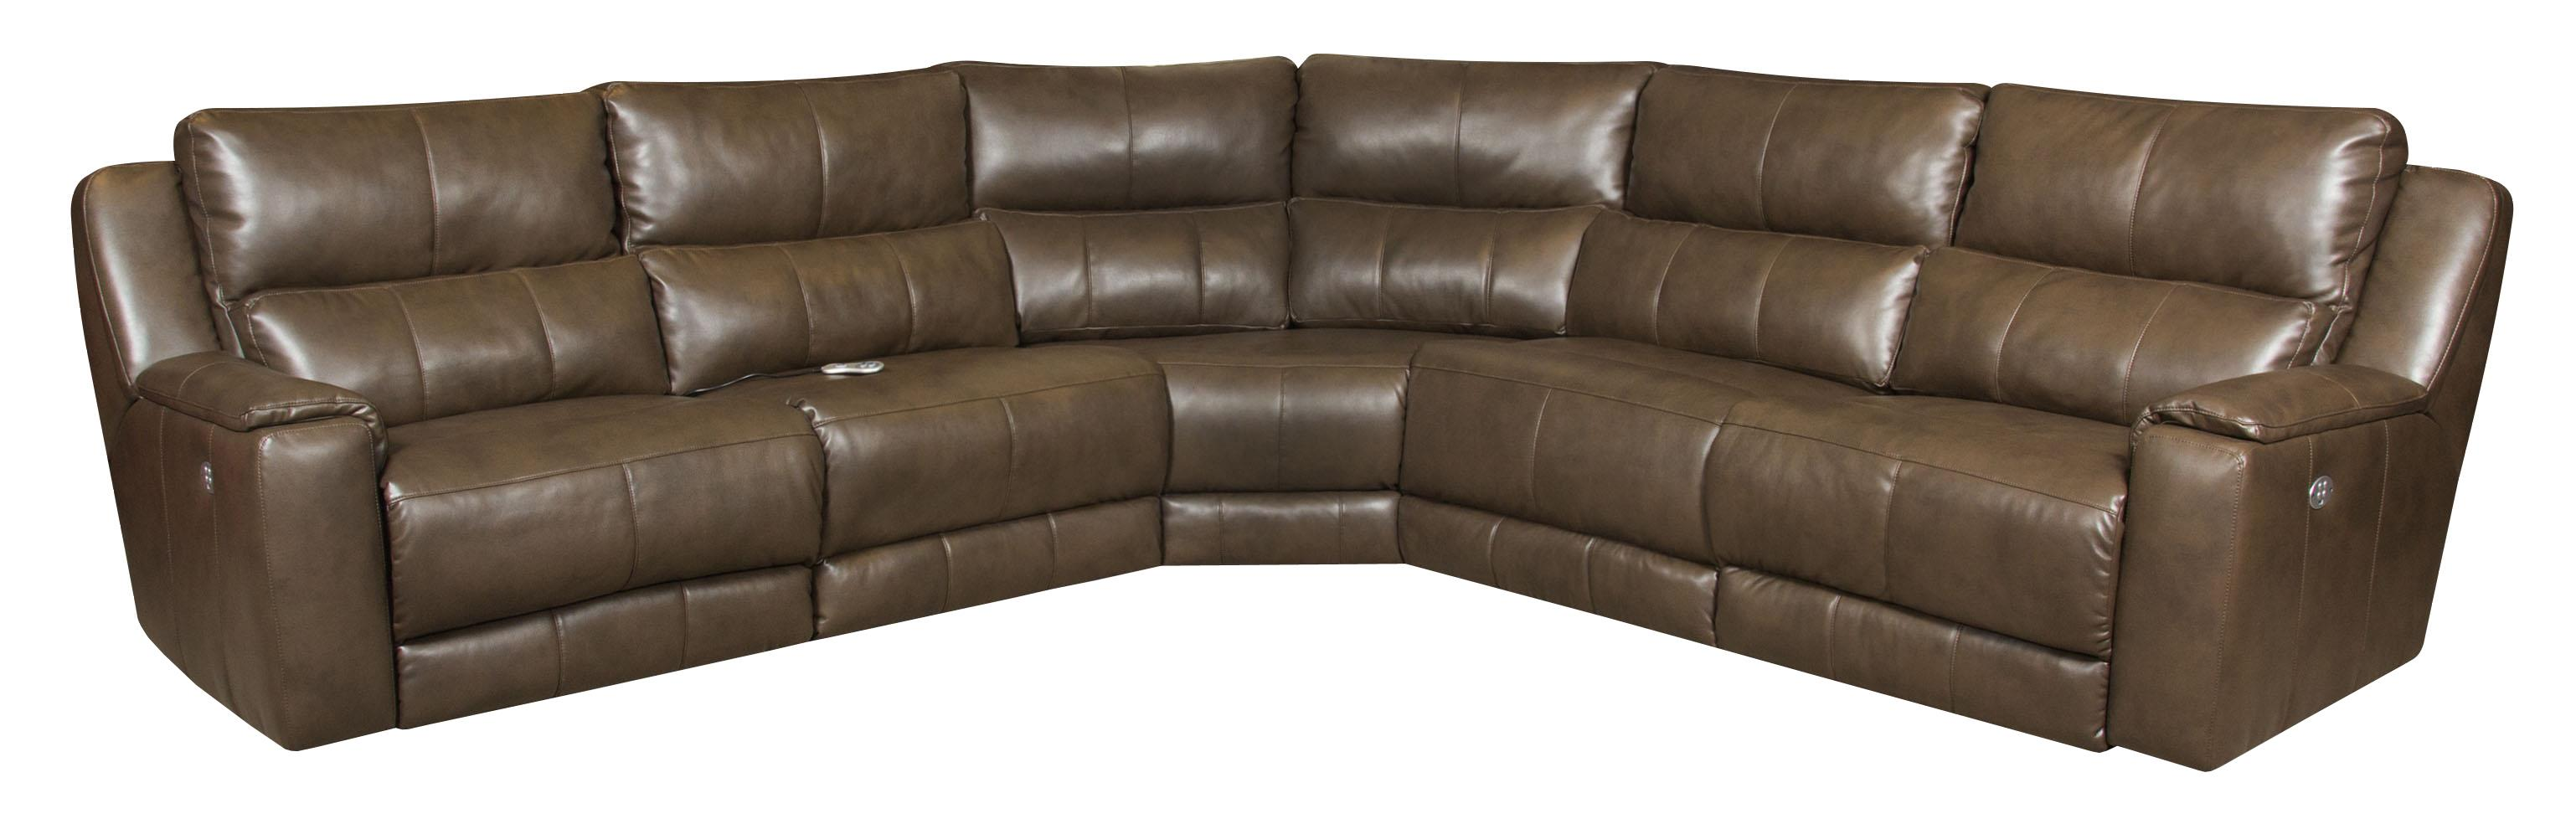 Southern Motion Dazzle Reclining Sectional with Power Headrests - Item Number: 883-05P+90P+84+90P+06P-243-21